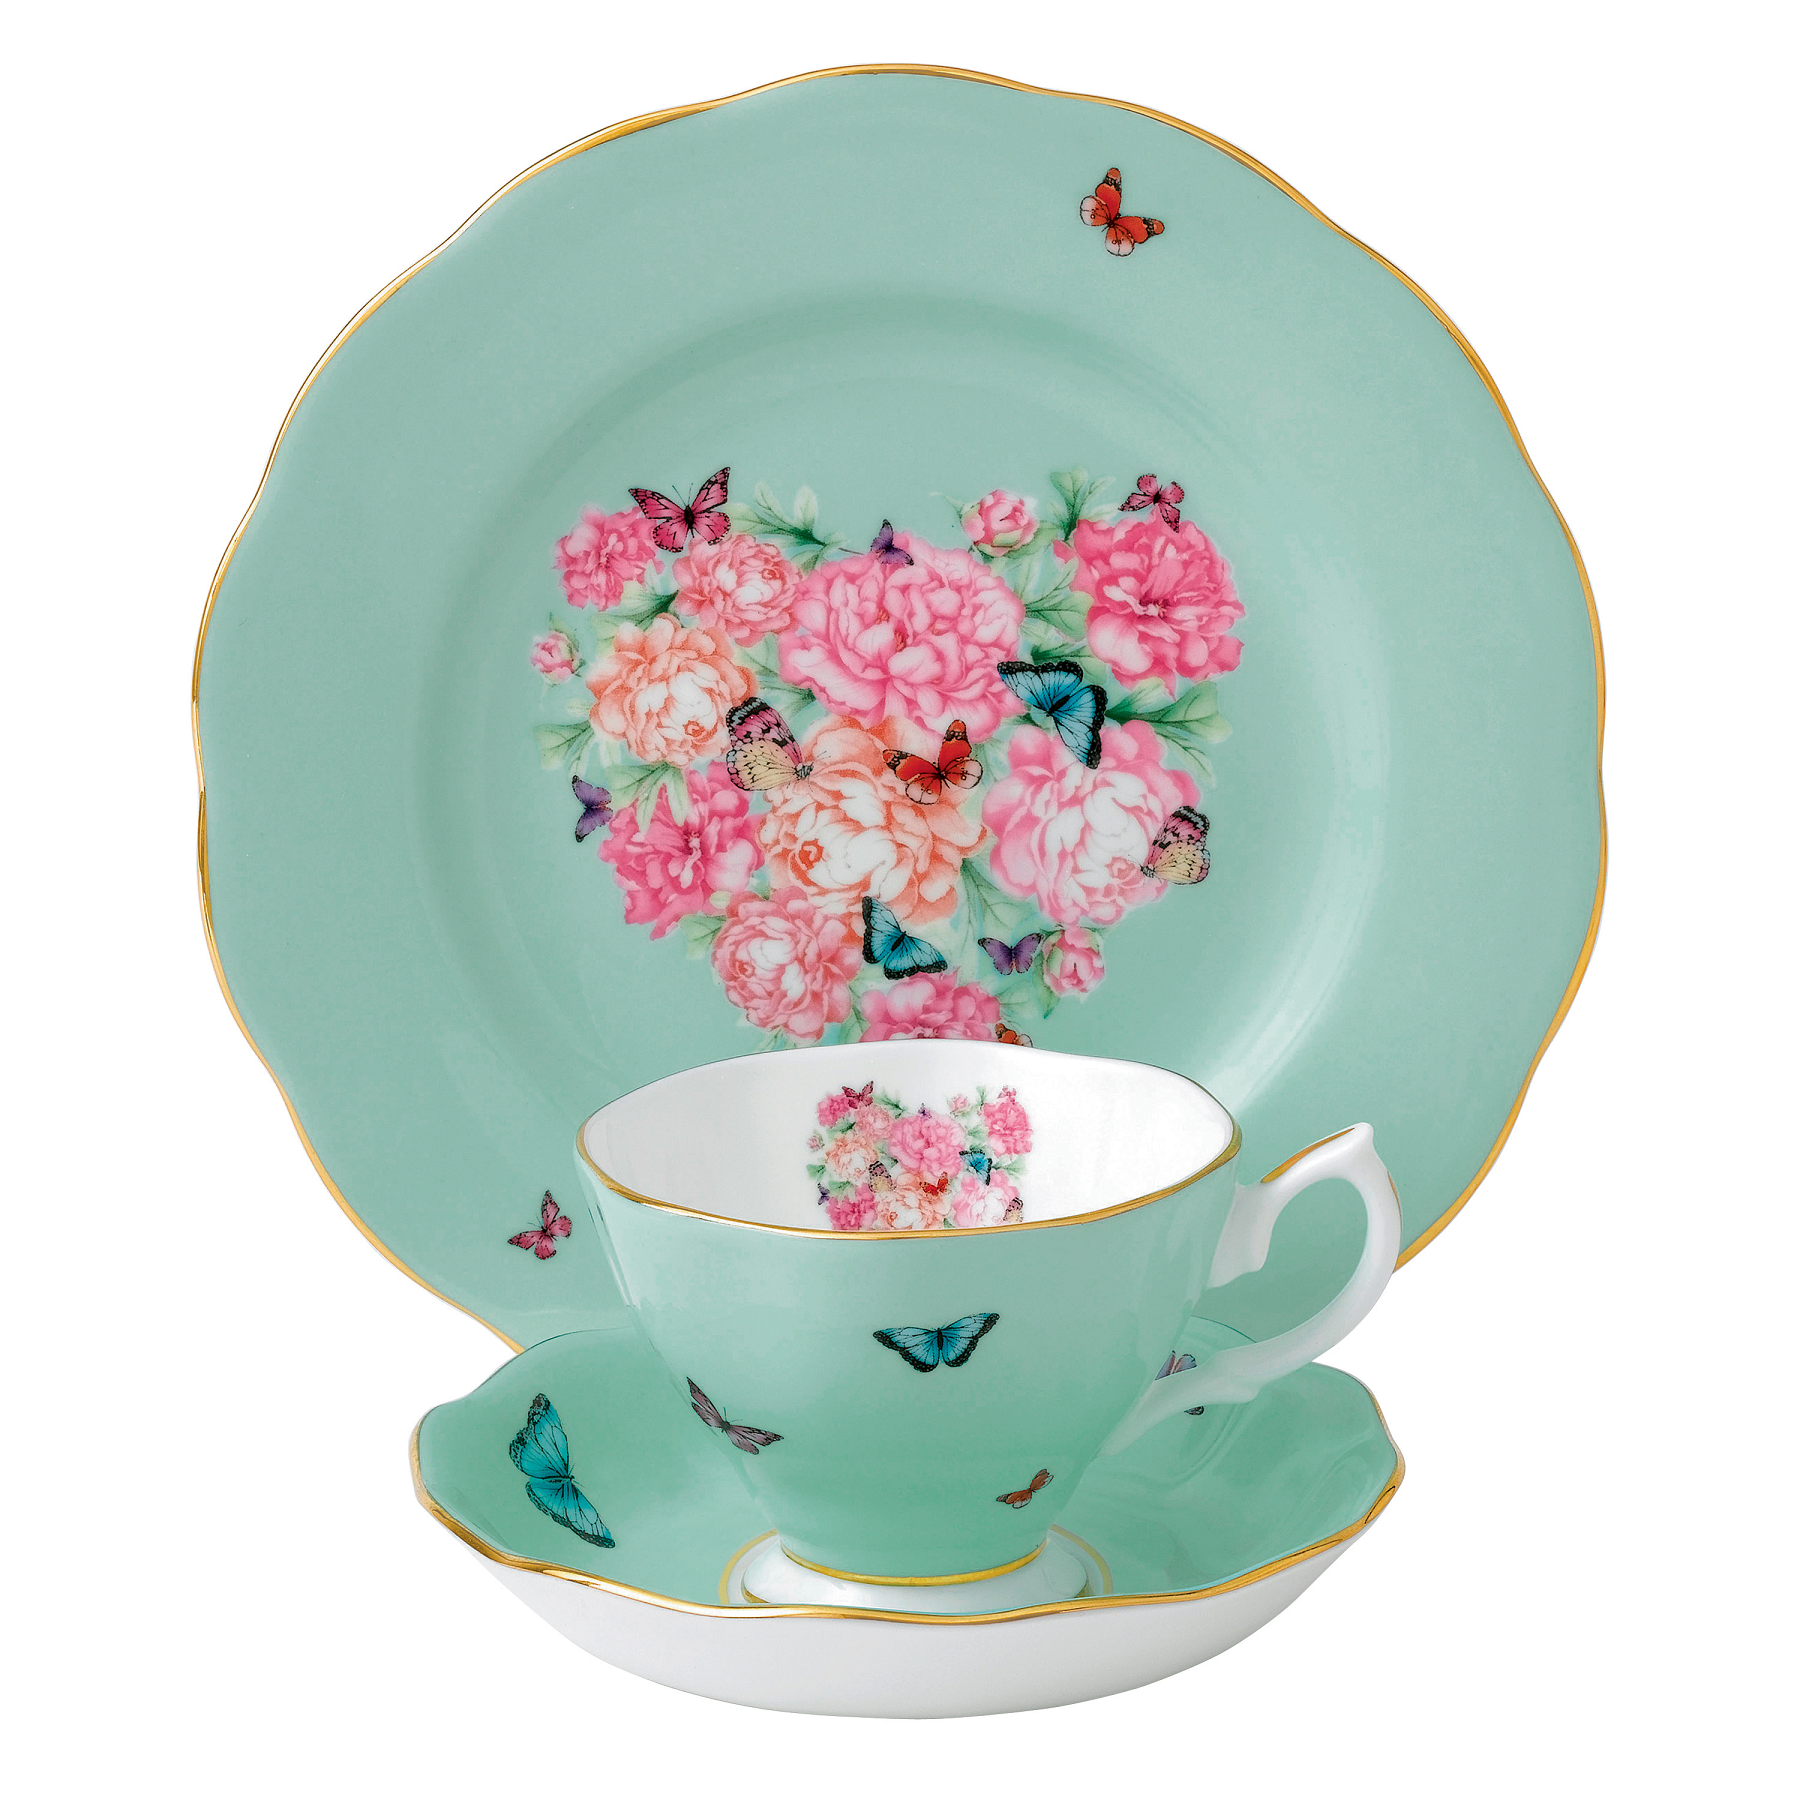 Miranda Kerr for Royal Albert Blessings Teacup, Saucer and Plate